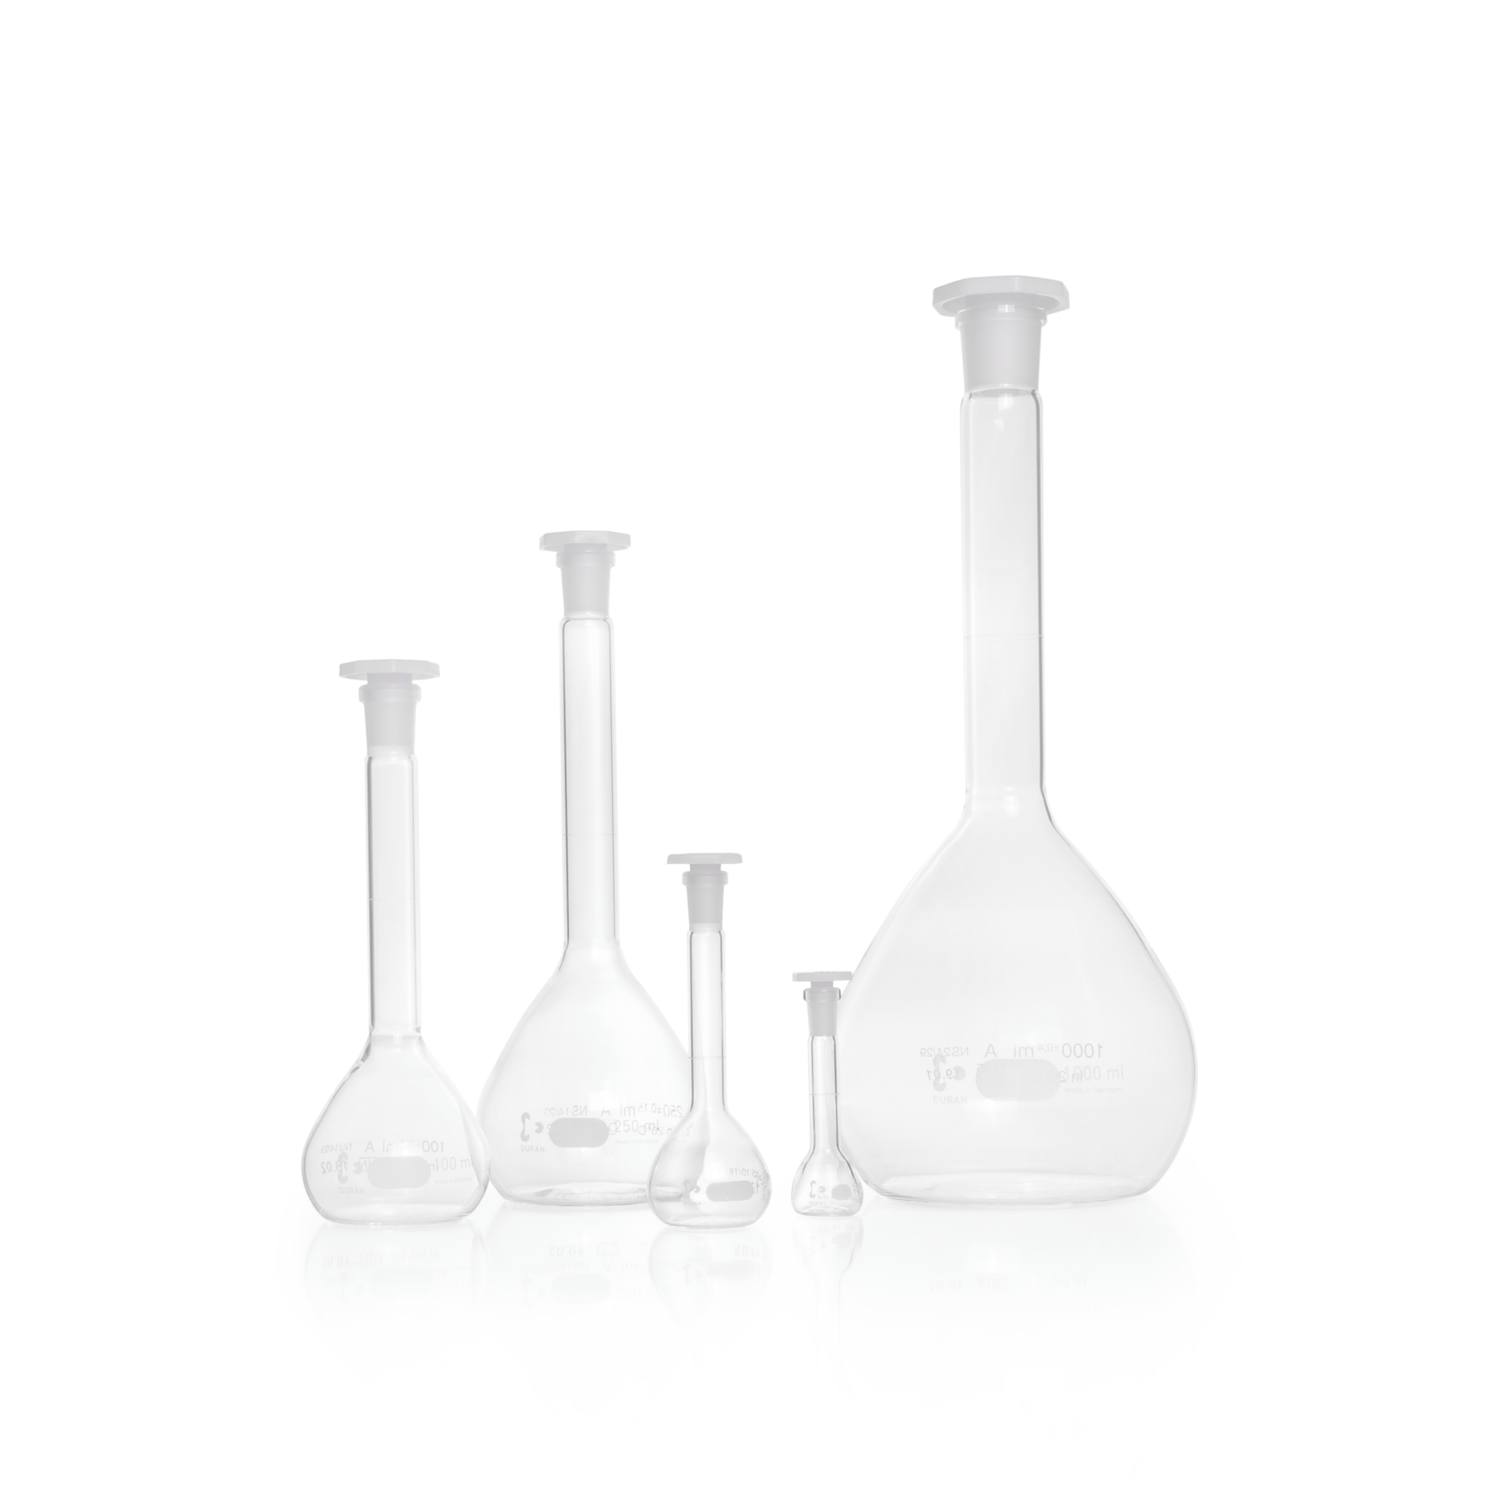 DURAN® Volumetric Flask, Class A, without certificate of conformity, 200 mL